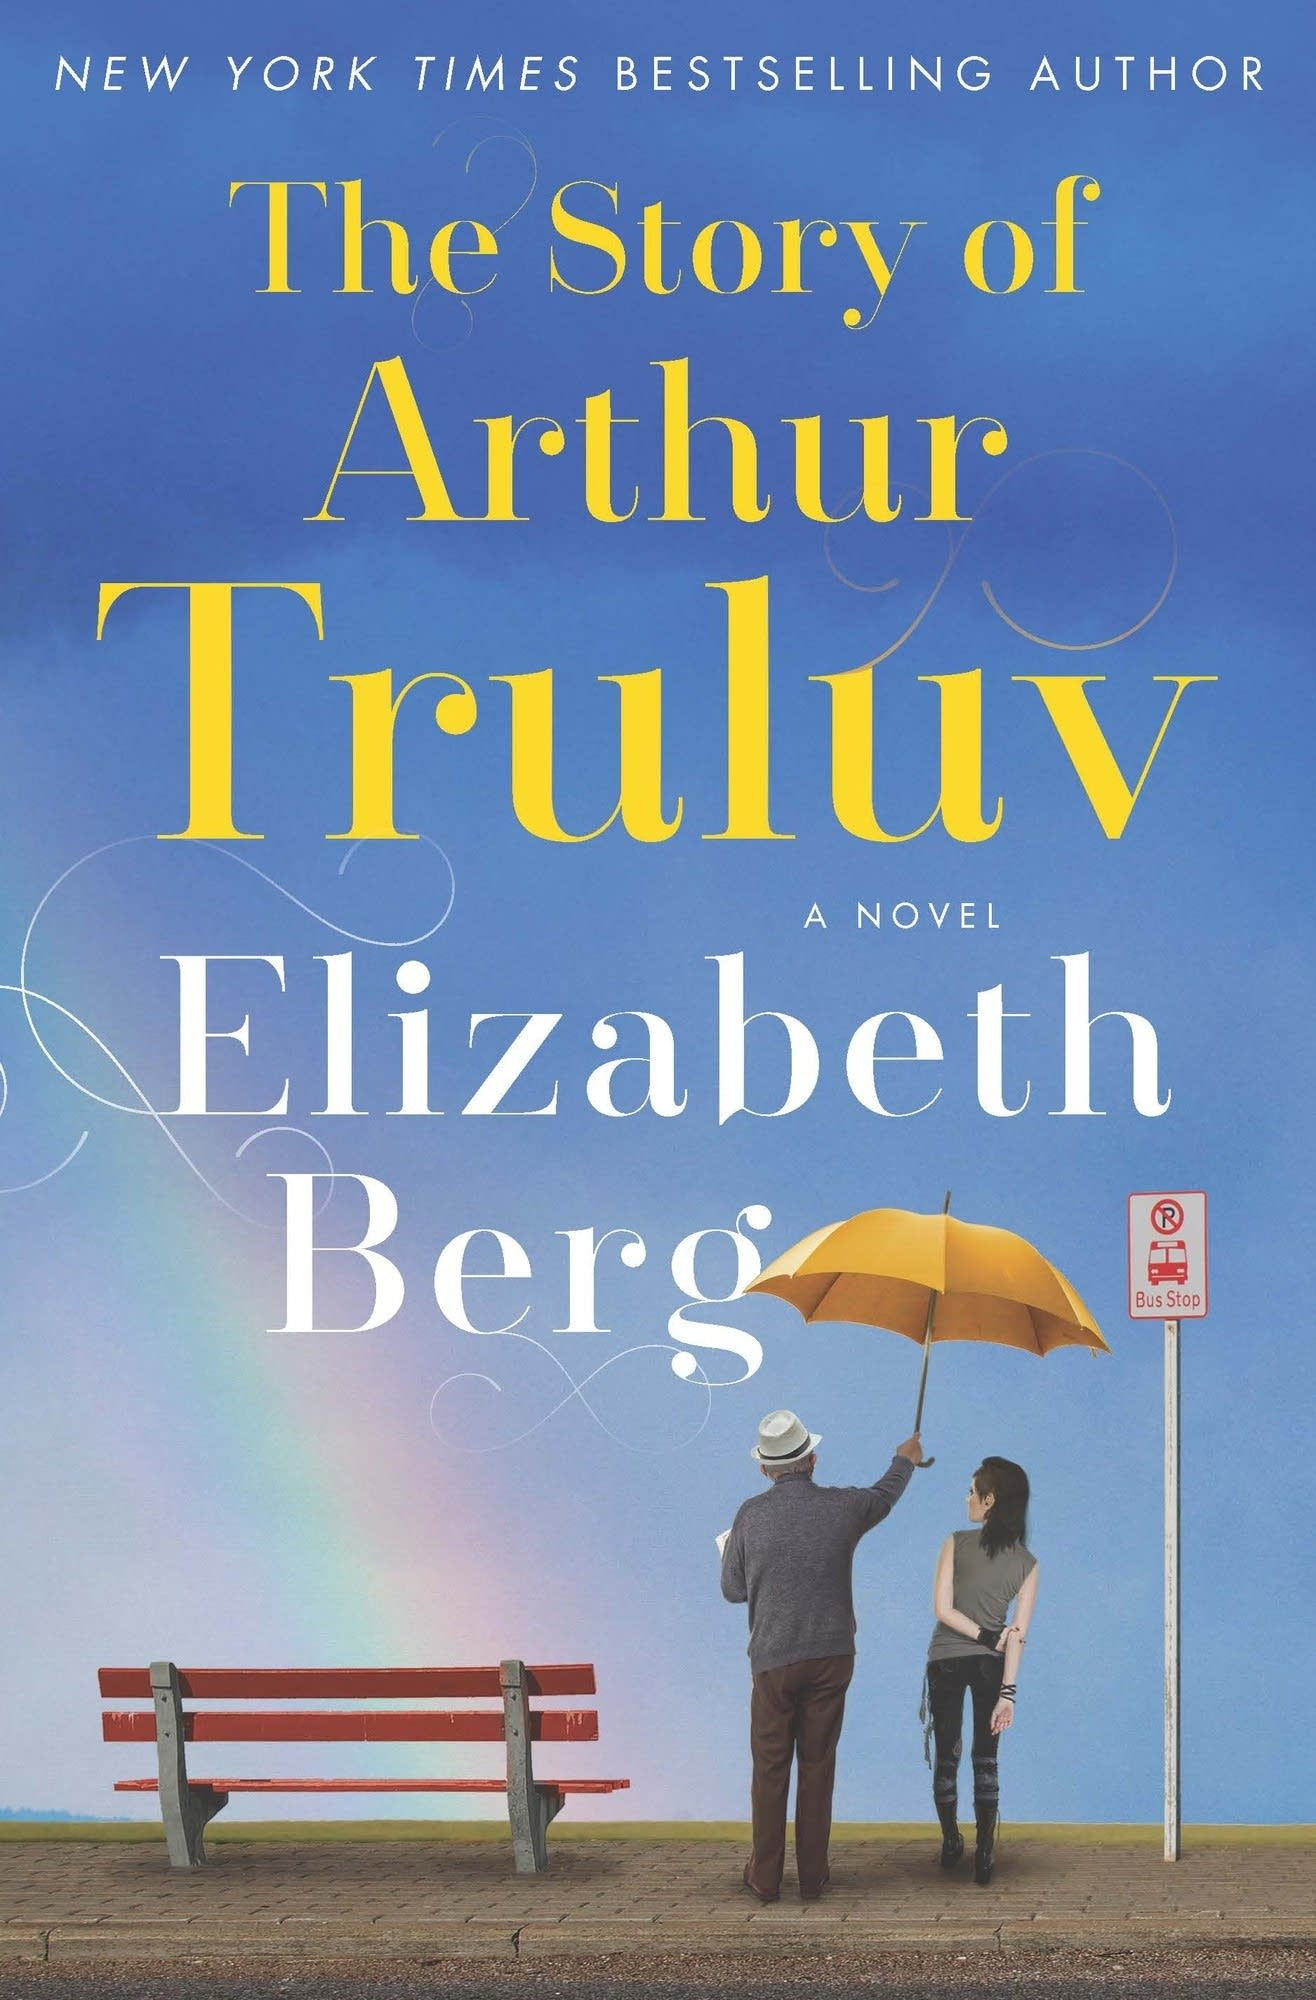 'The Story of Arthur Truluv' by Elizabeth Berg